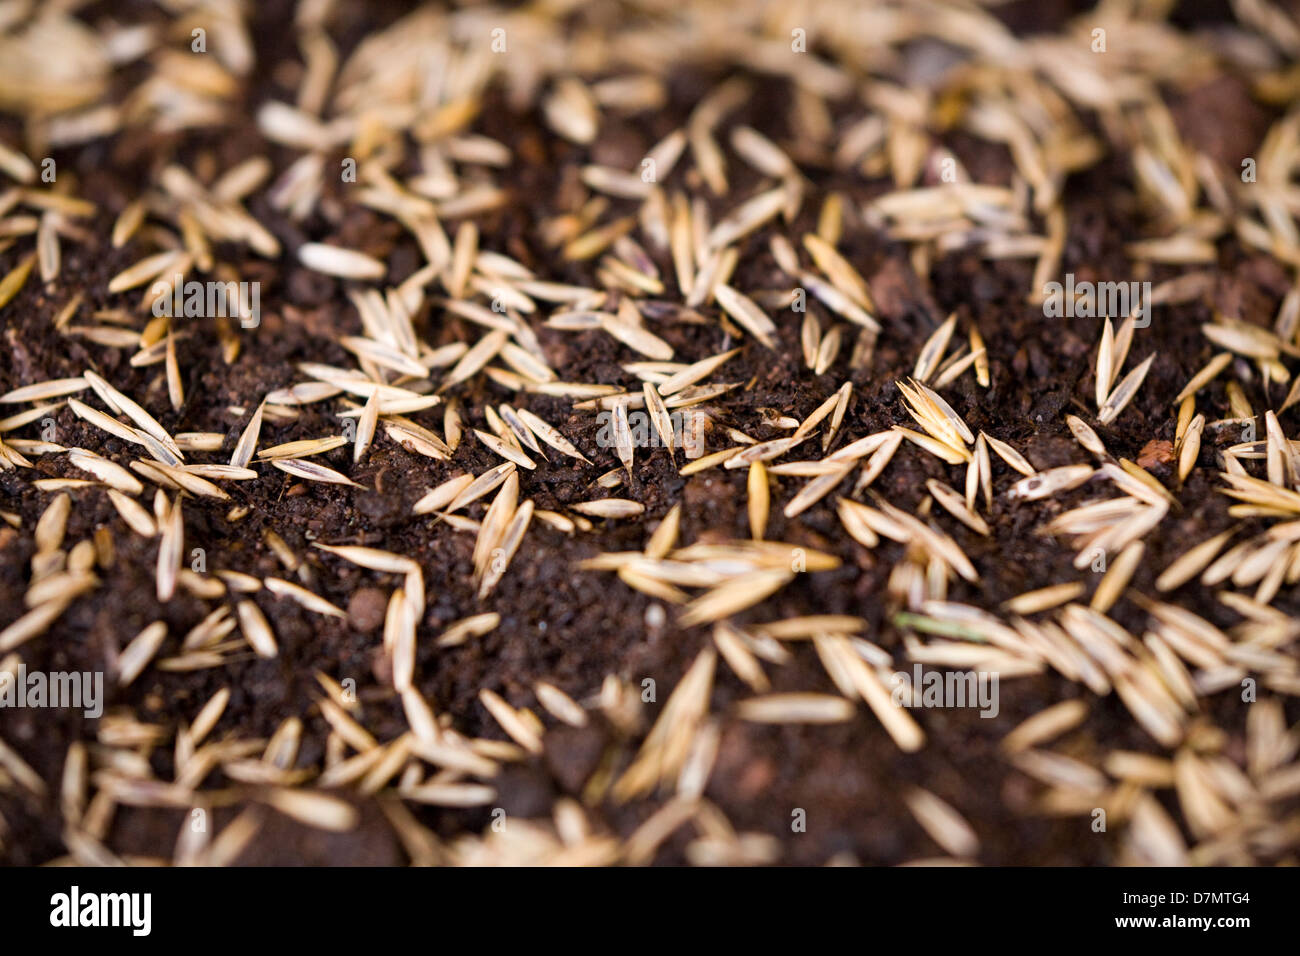 Grass seeds freshly sown on wet / moist / damp / watered top soil / compost and waiting to germinate. - Stock Image